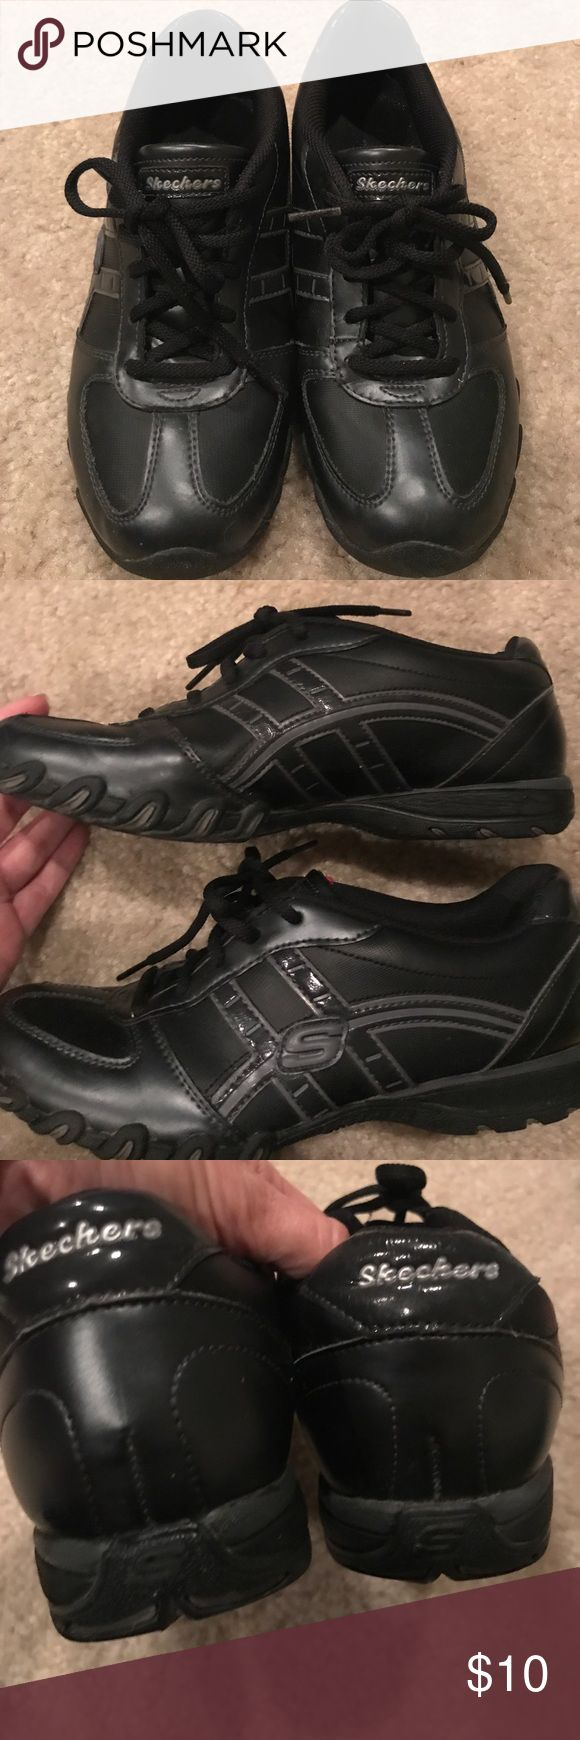 Skechers Black Sneakers Size 8 Black sneakers.  Leather and Synthetic Upper.  No scuffs. EUC. Skechers Size 8 Skechers Shoes Sneakers